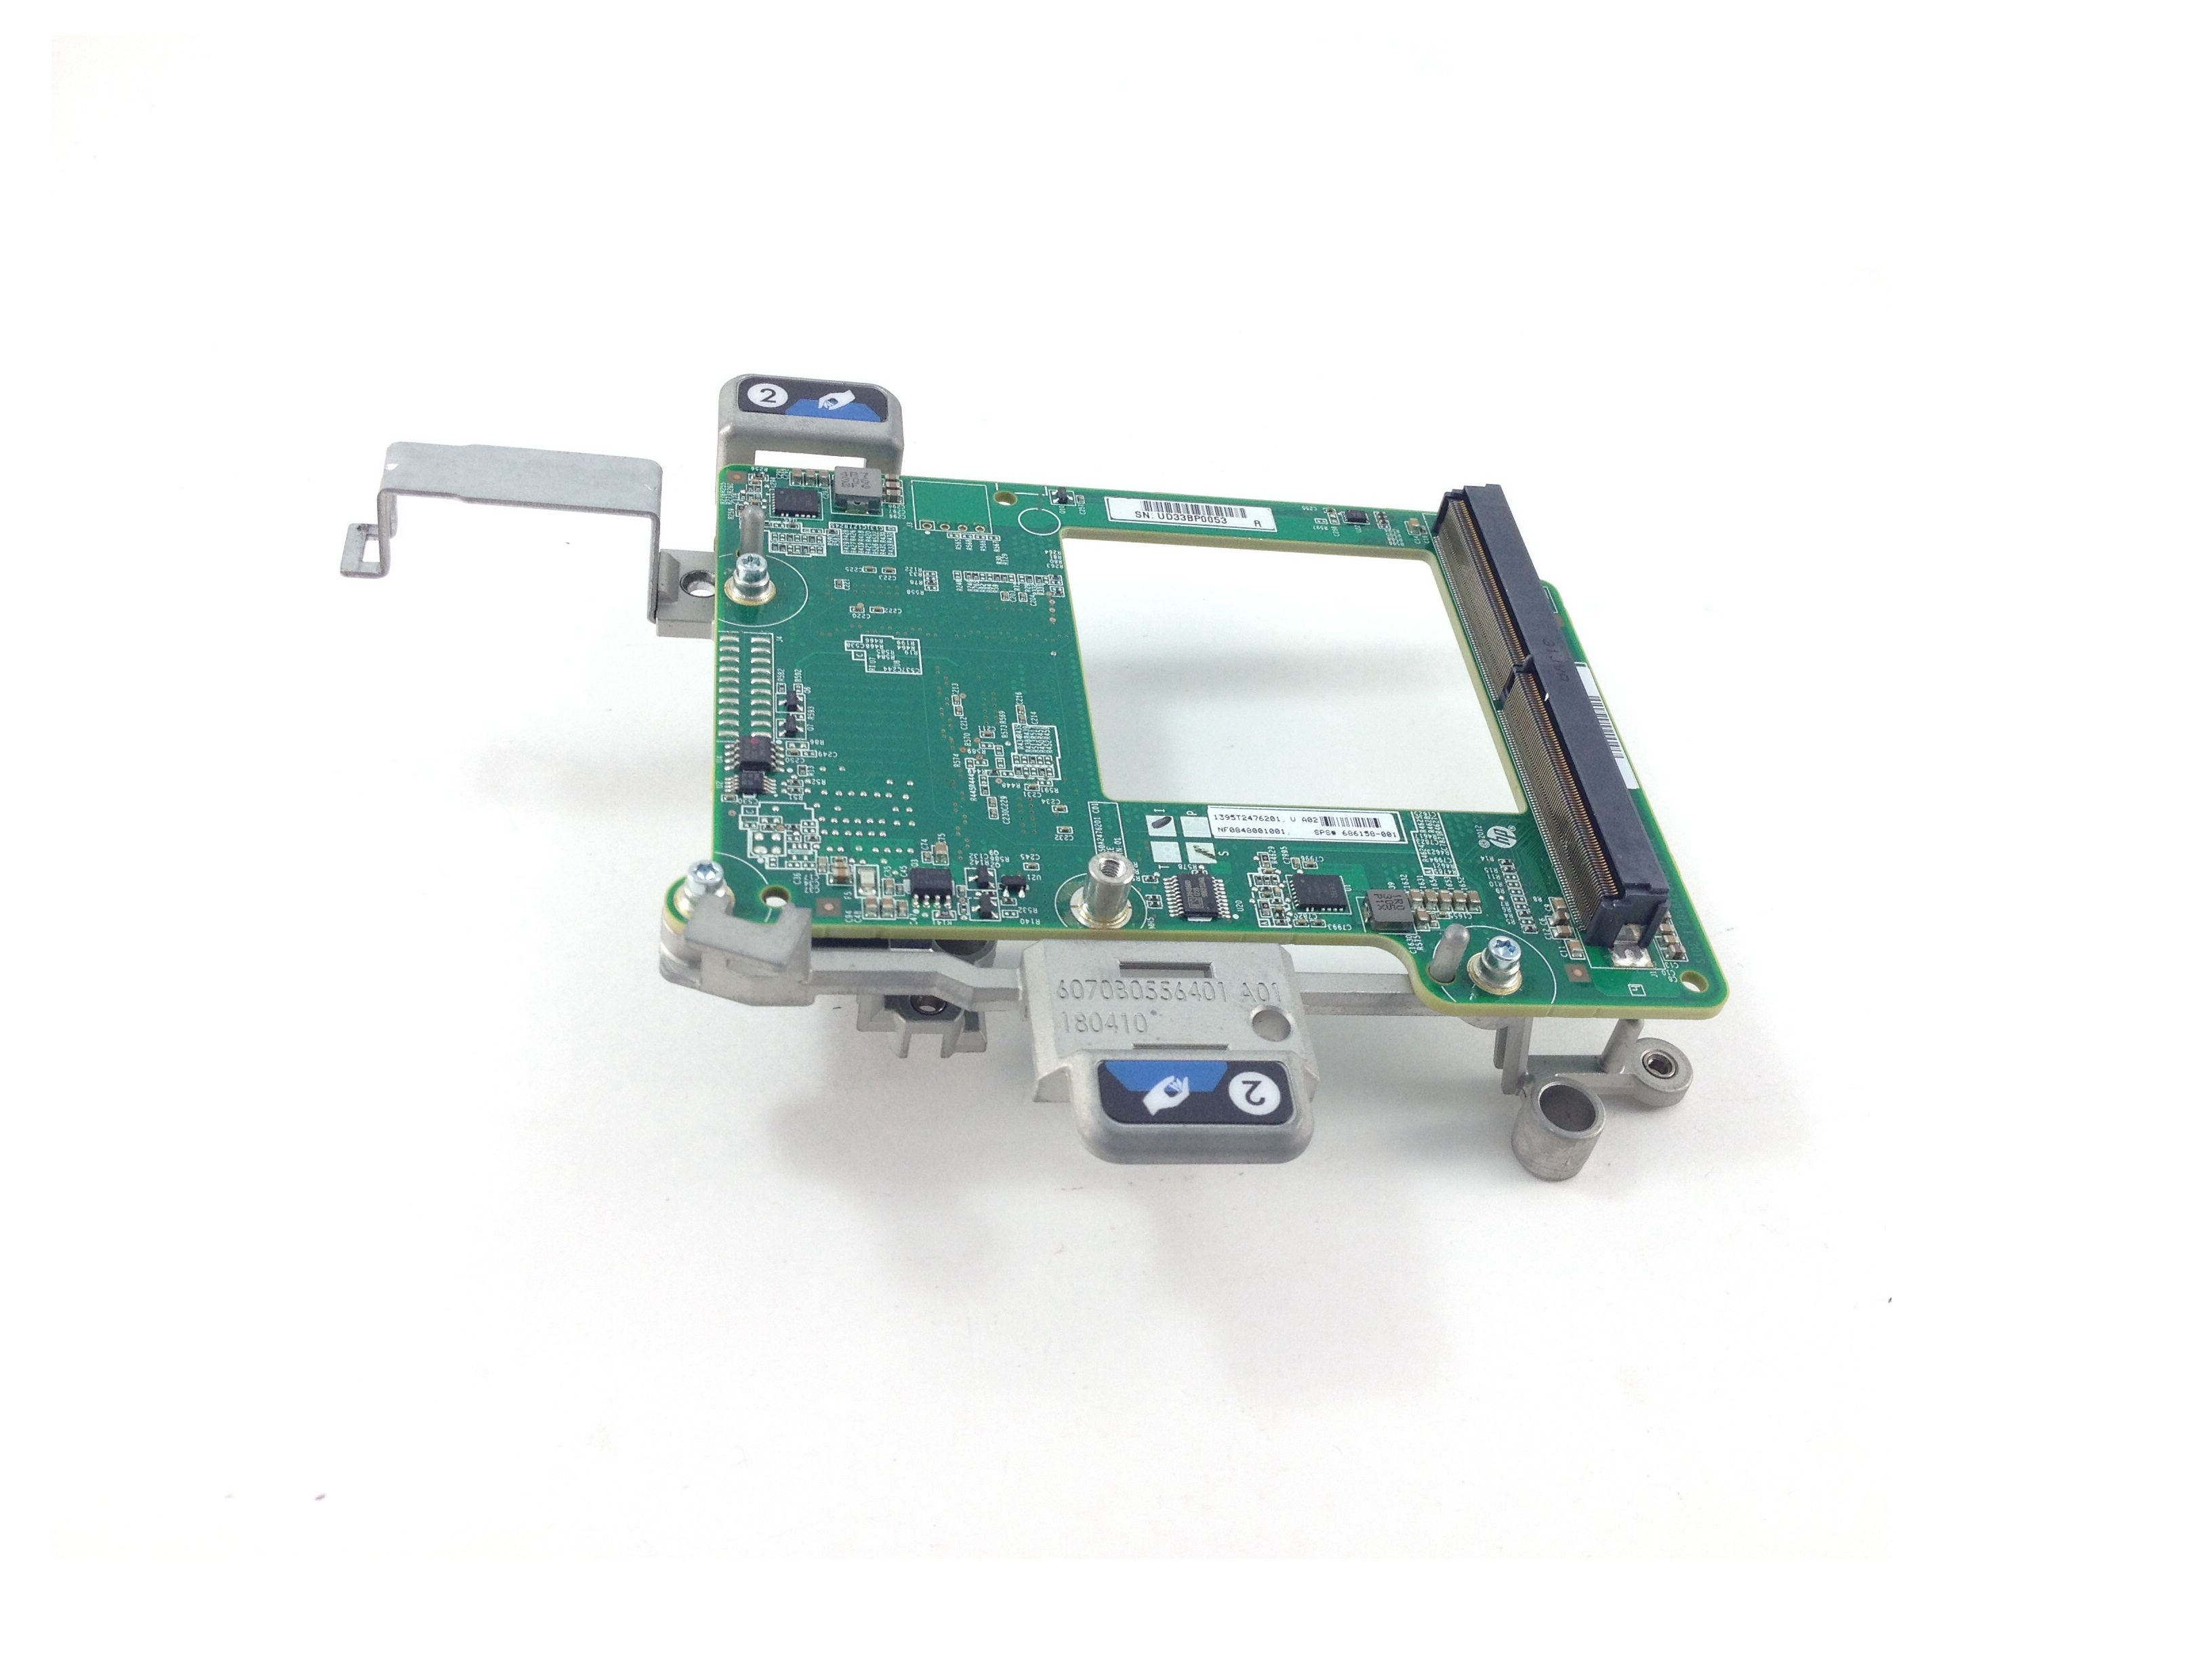 HP Quadro 3000 Mxm PCI-E Graphics Gen8 Blade (Adapter Only) (686158-001)